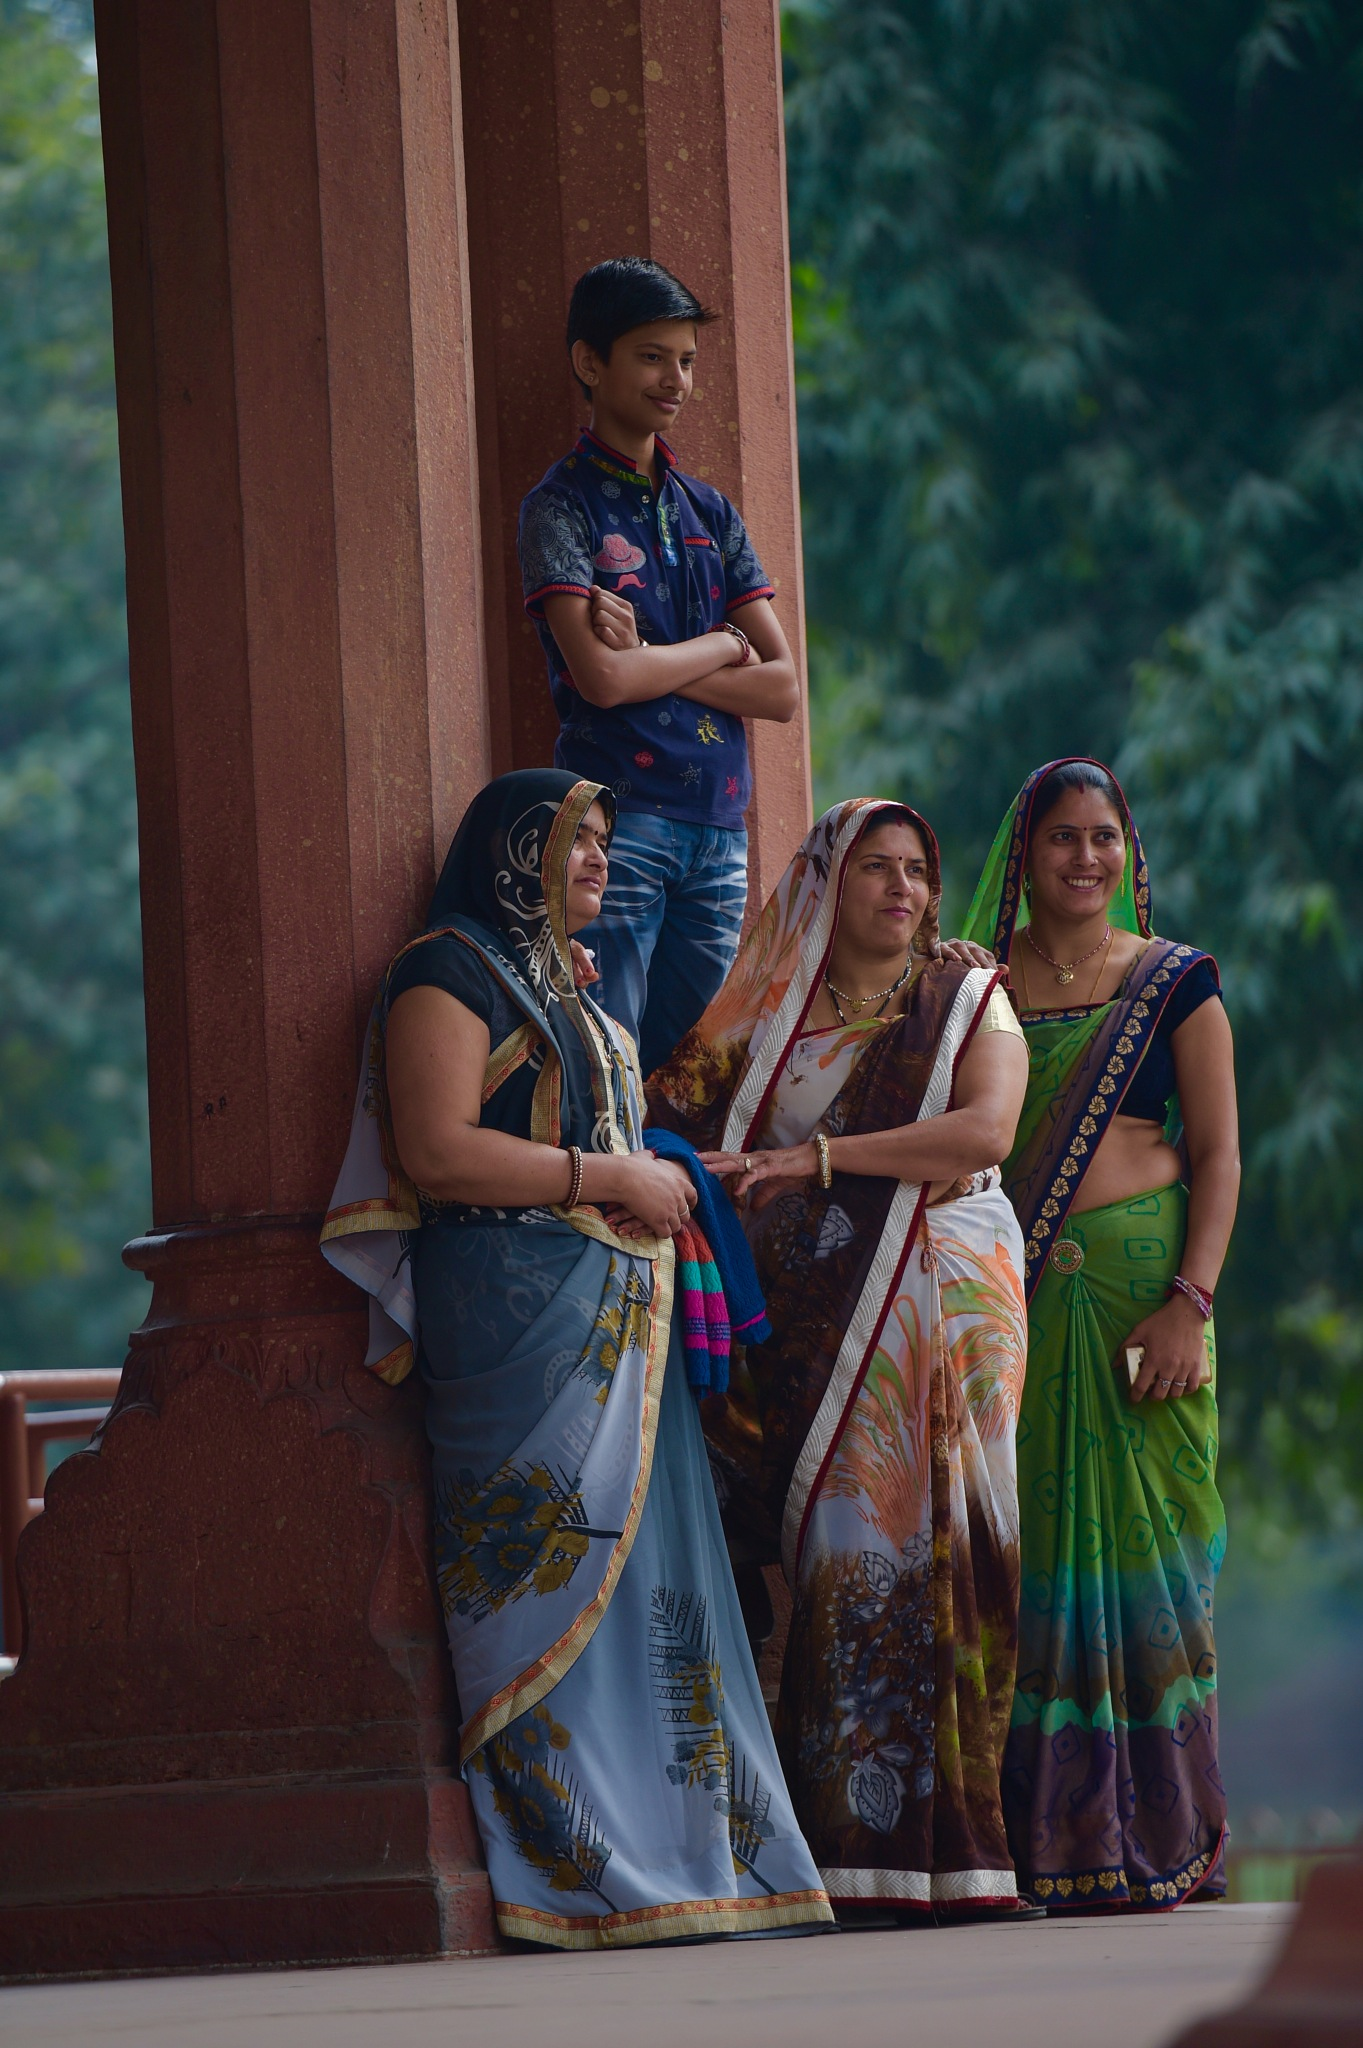 More portraits of India 2019 by Robert Malin Young